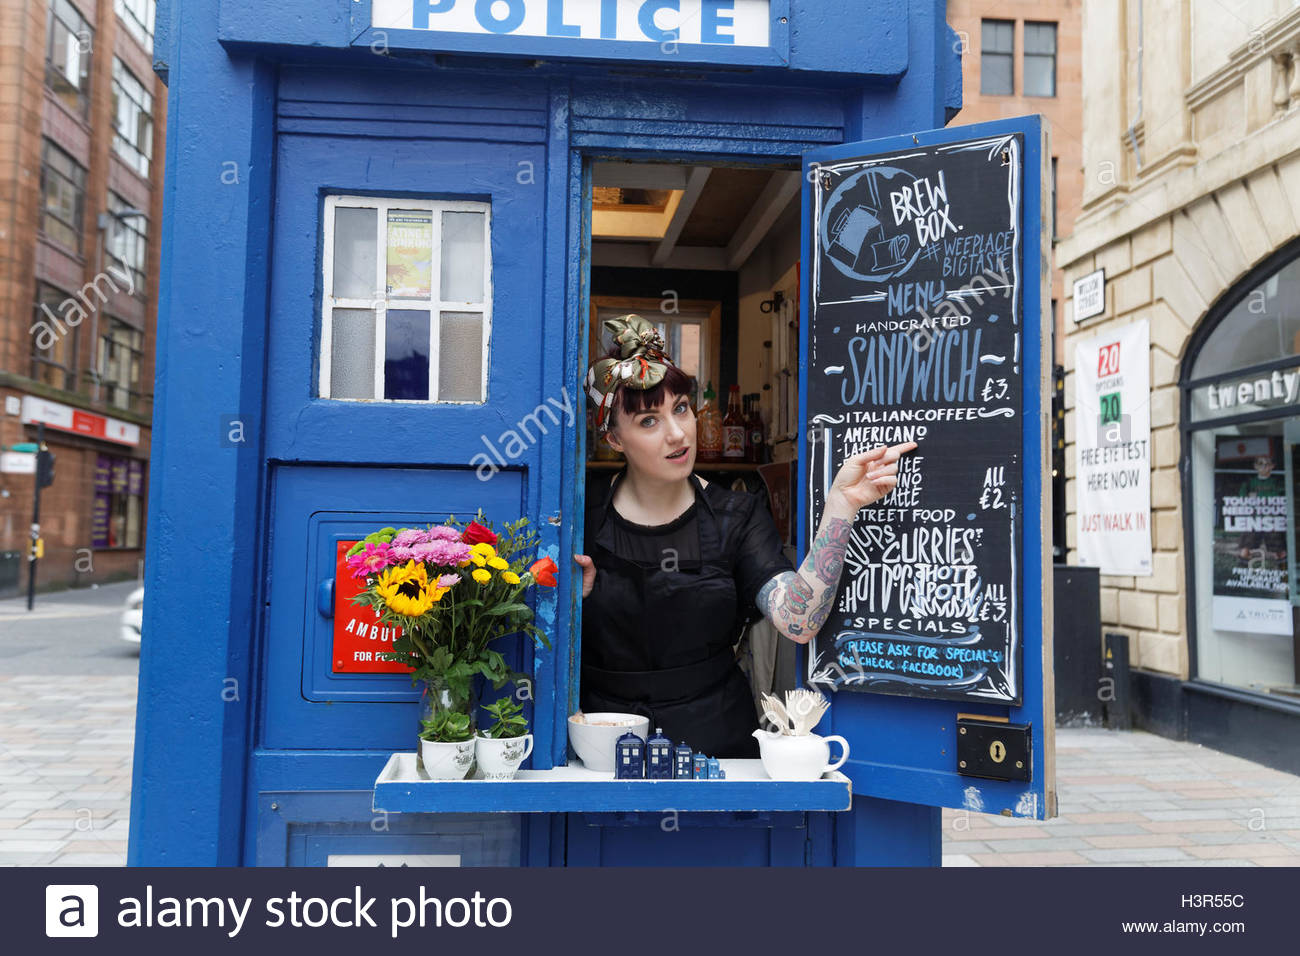 coffee-sandwich-bar-in-a-glasgow-police-box-which-is-made-famous-as-H3R55C.jpg